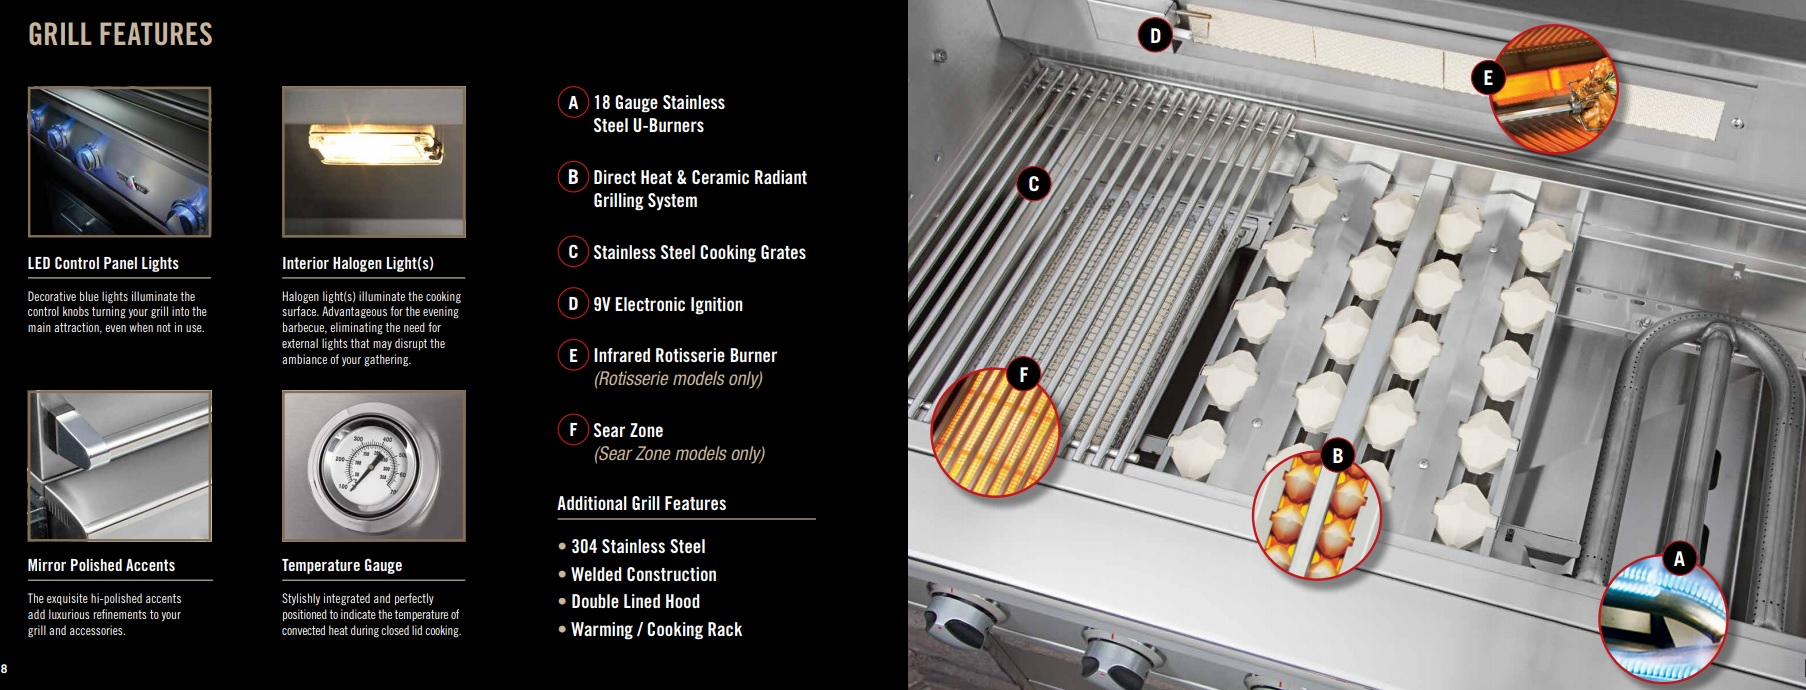 Delta Heat Grill Features